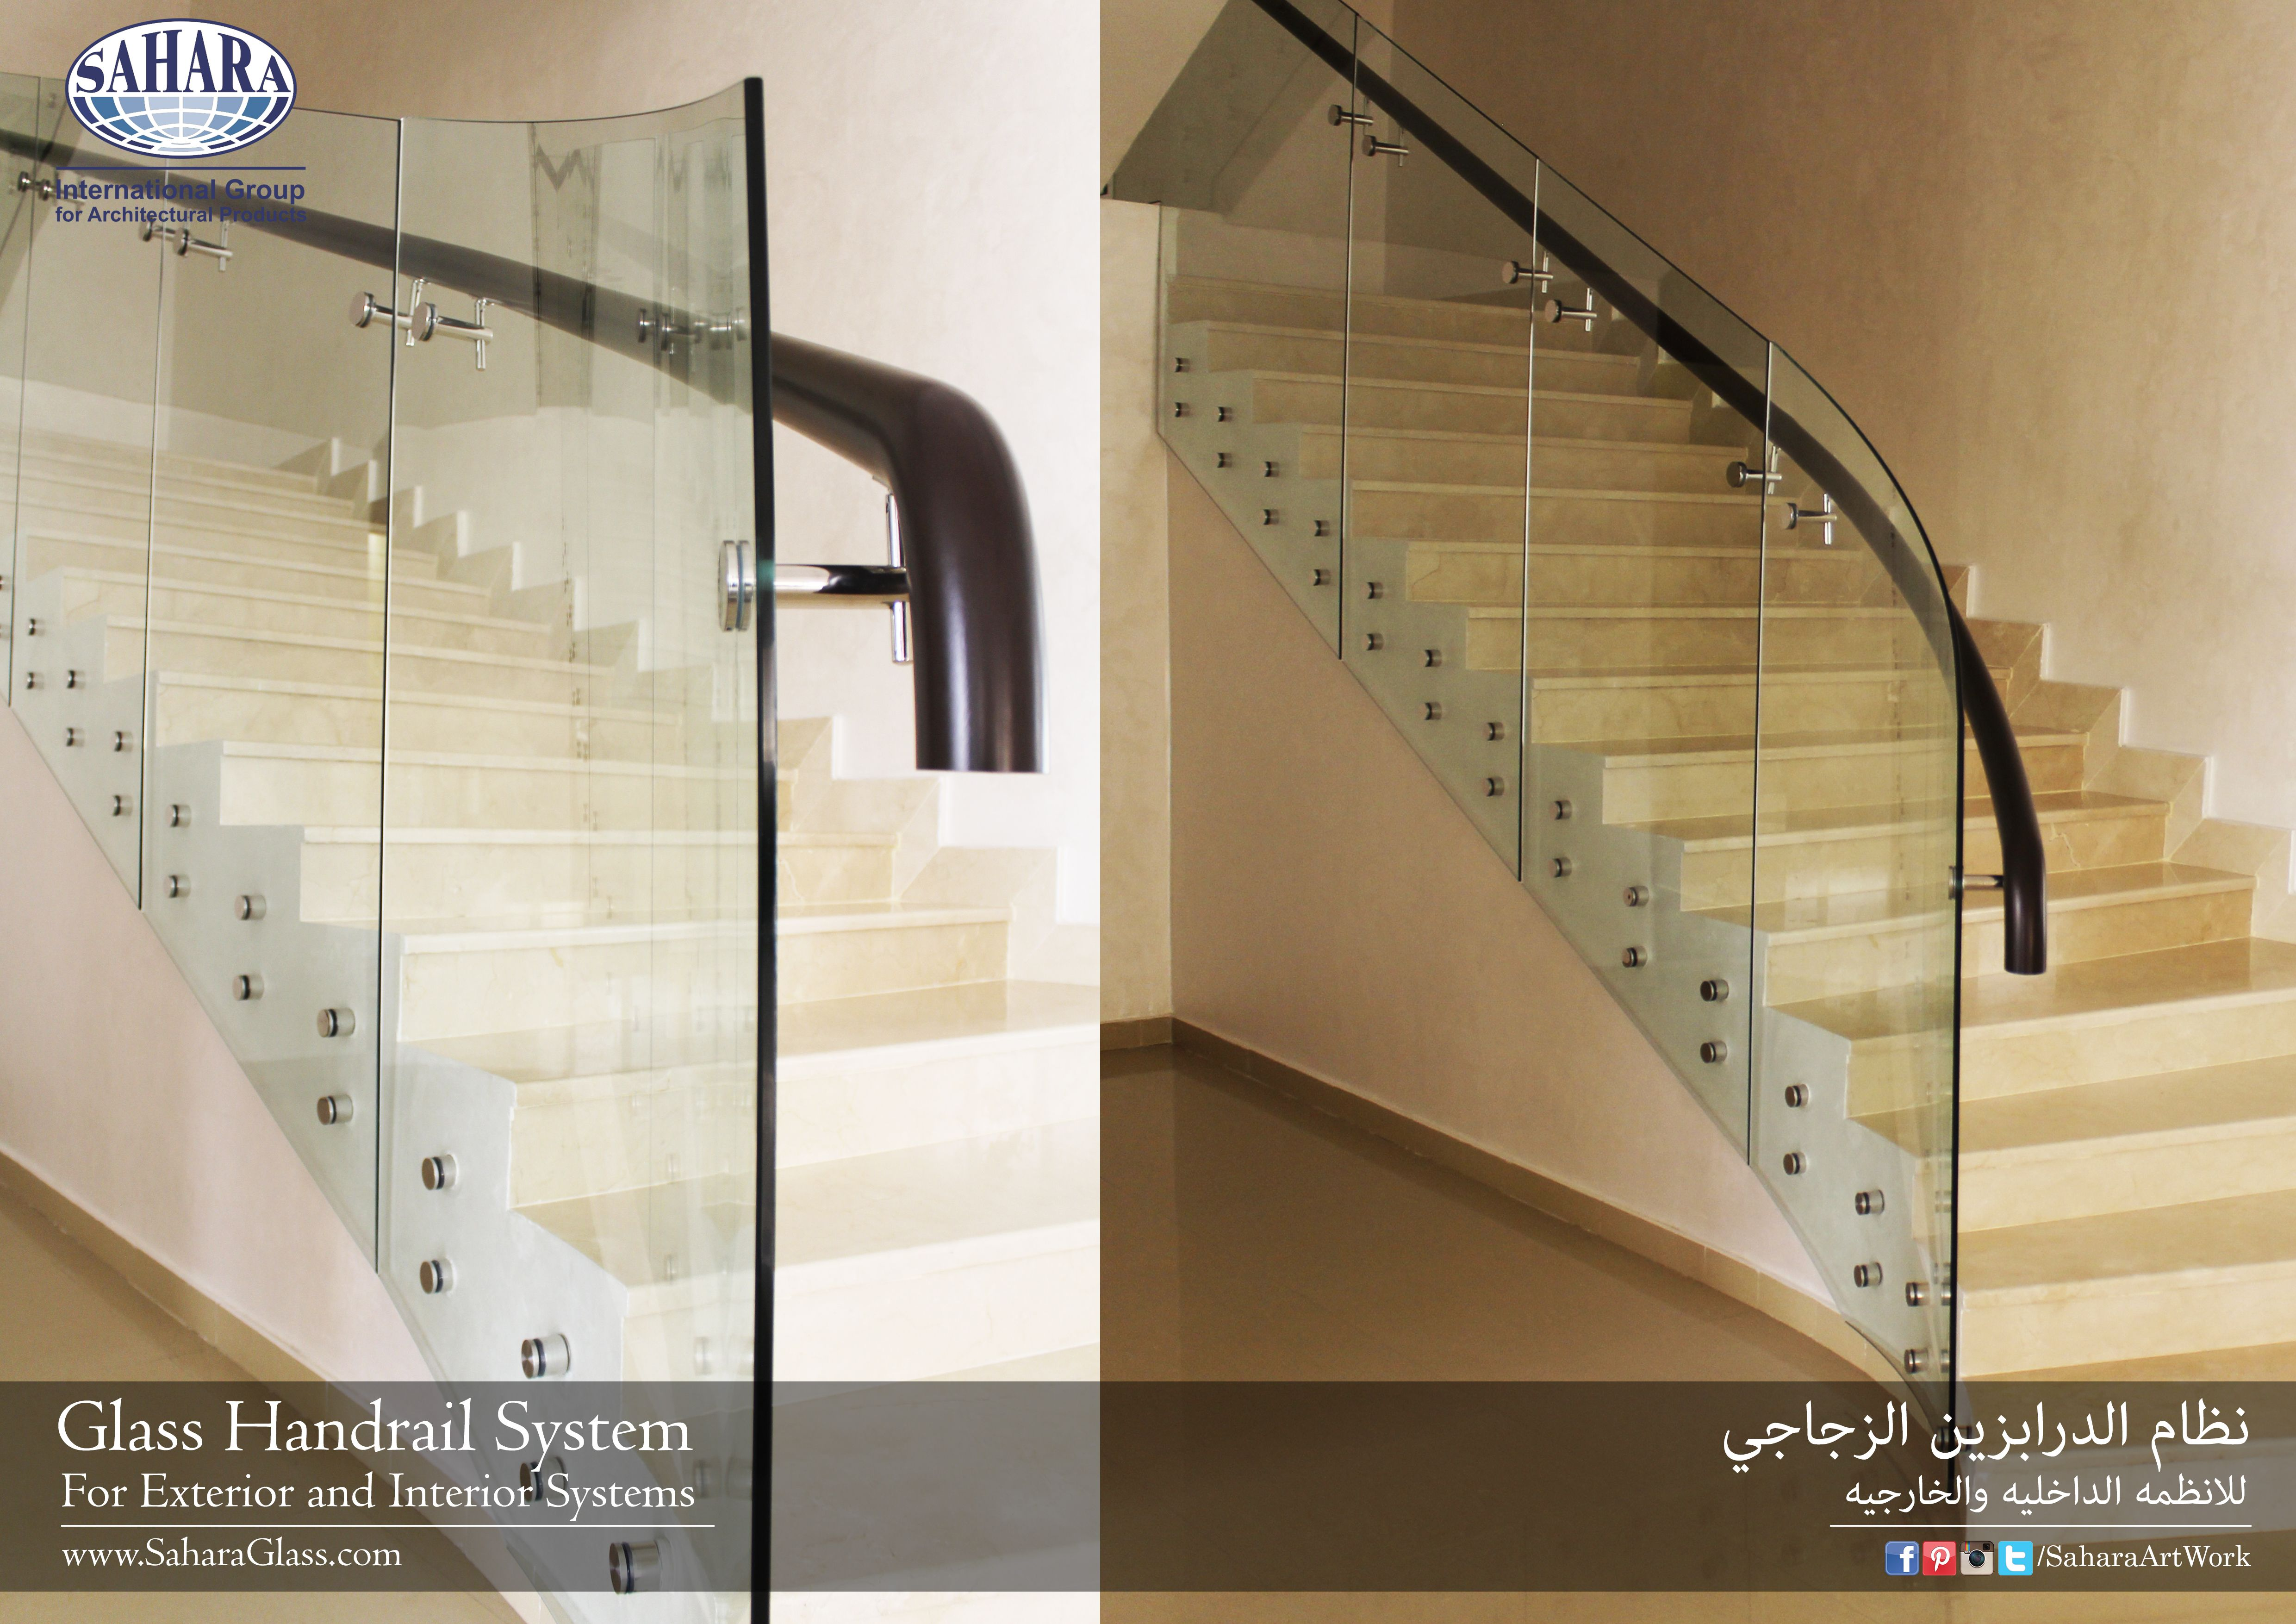 A Very Elegant And Beautiful Glass Handrail Glass Handrail Mahogany Wood Handrail